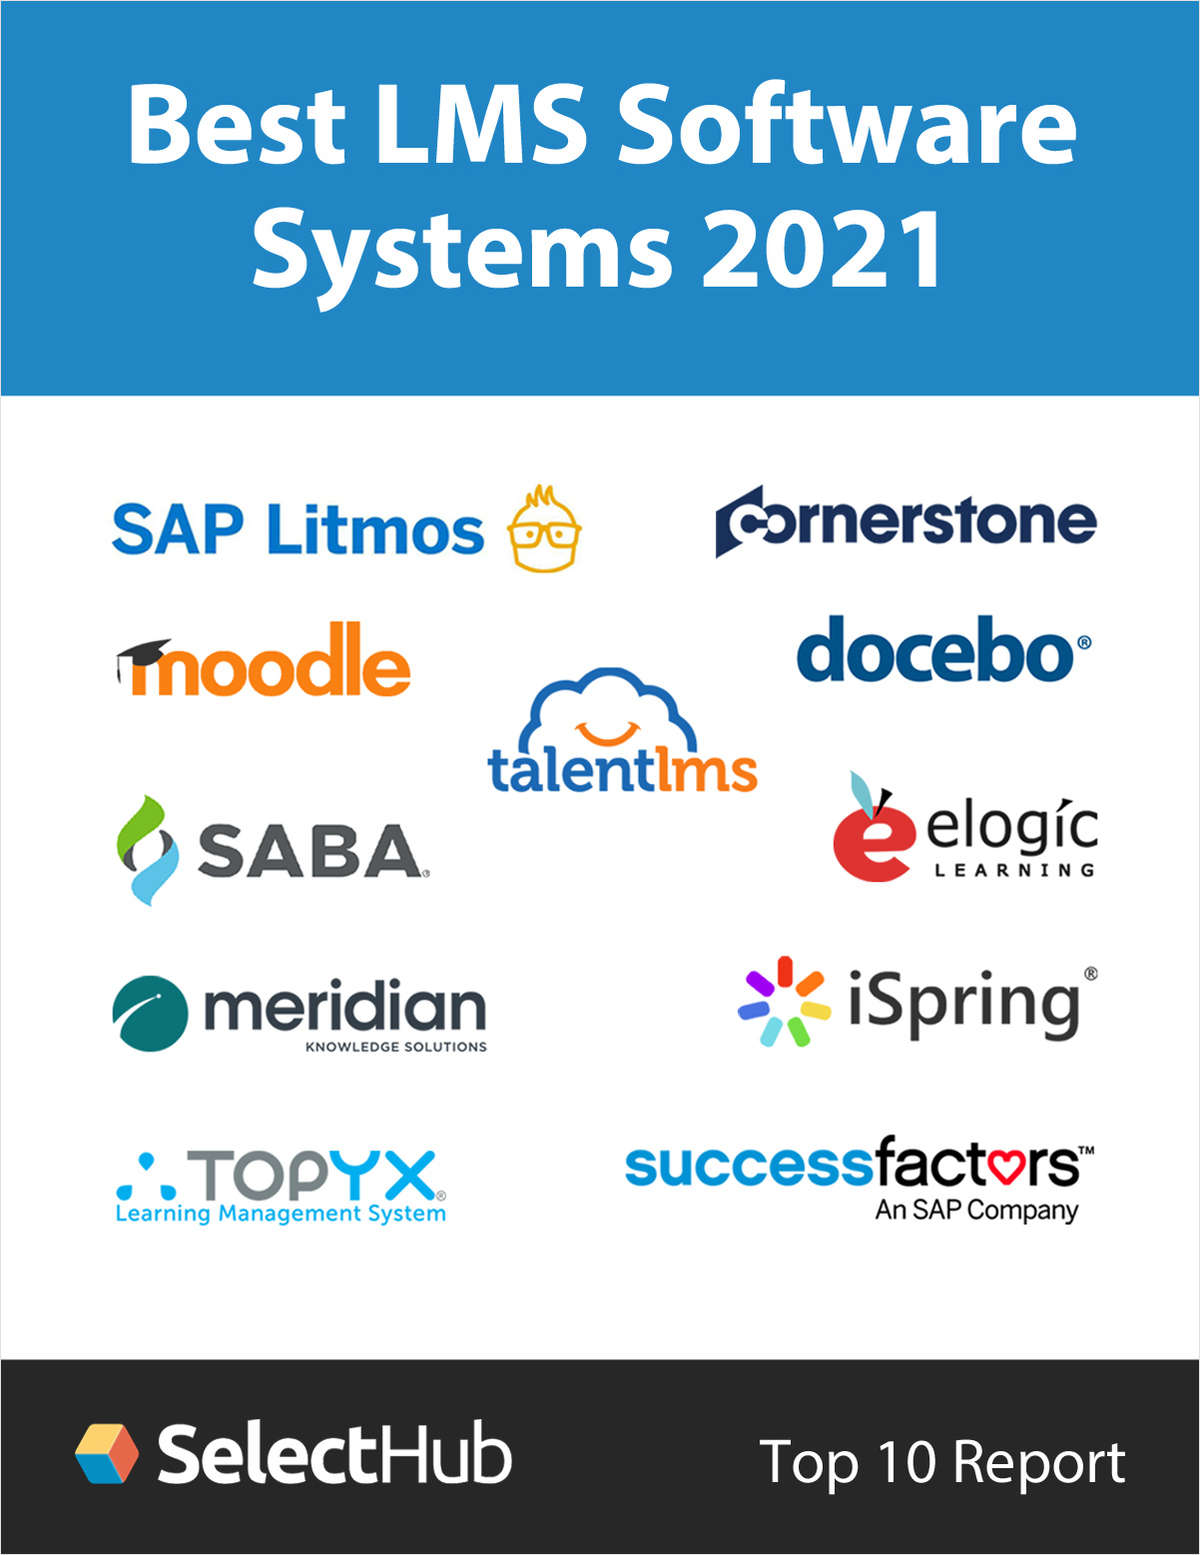 Best LMS Software for 2021--Expert Reviews, Recommendations, Pricing